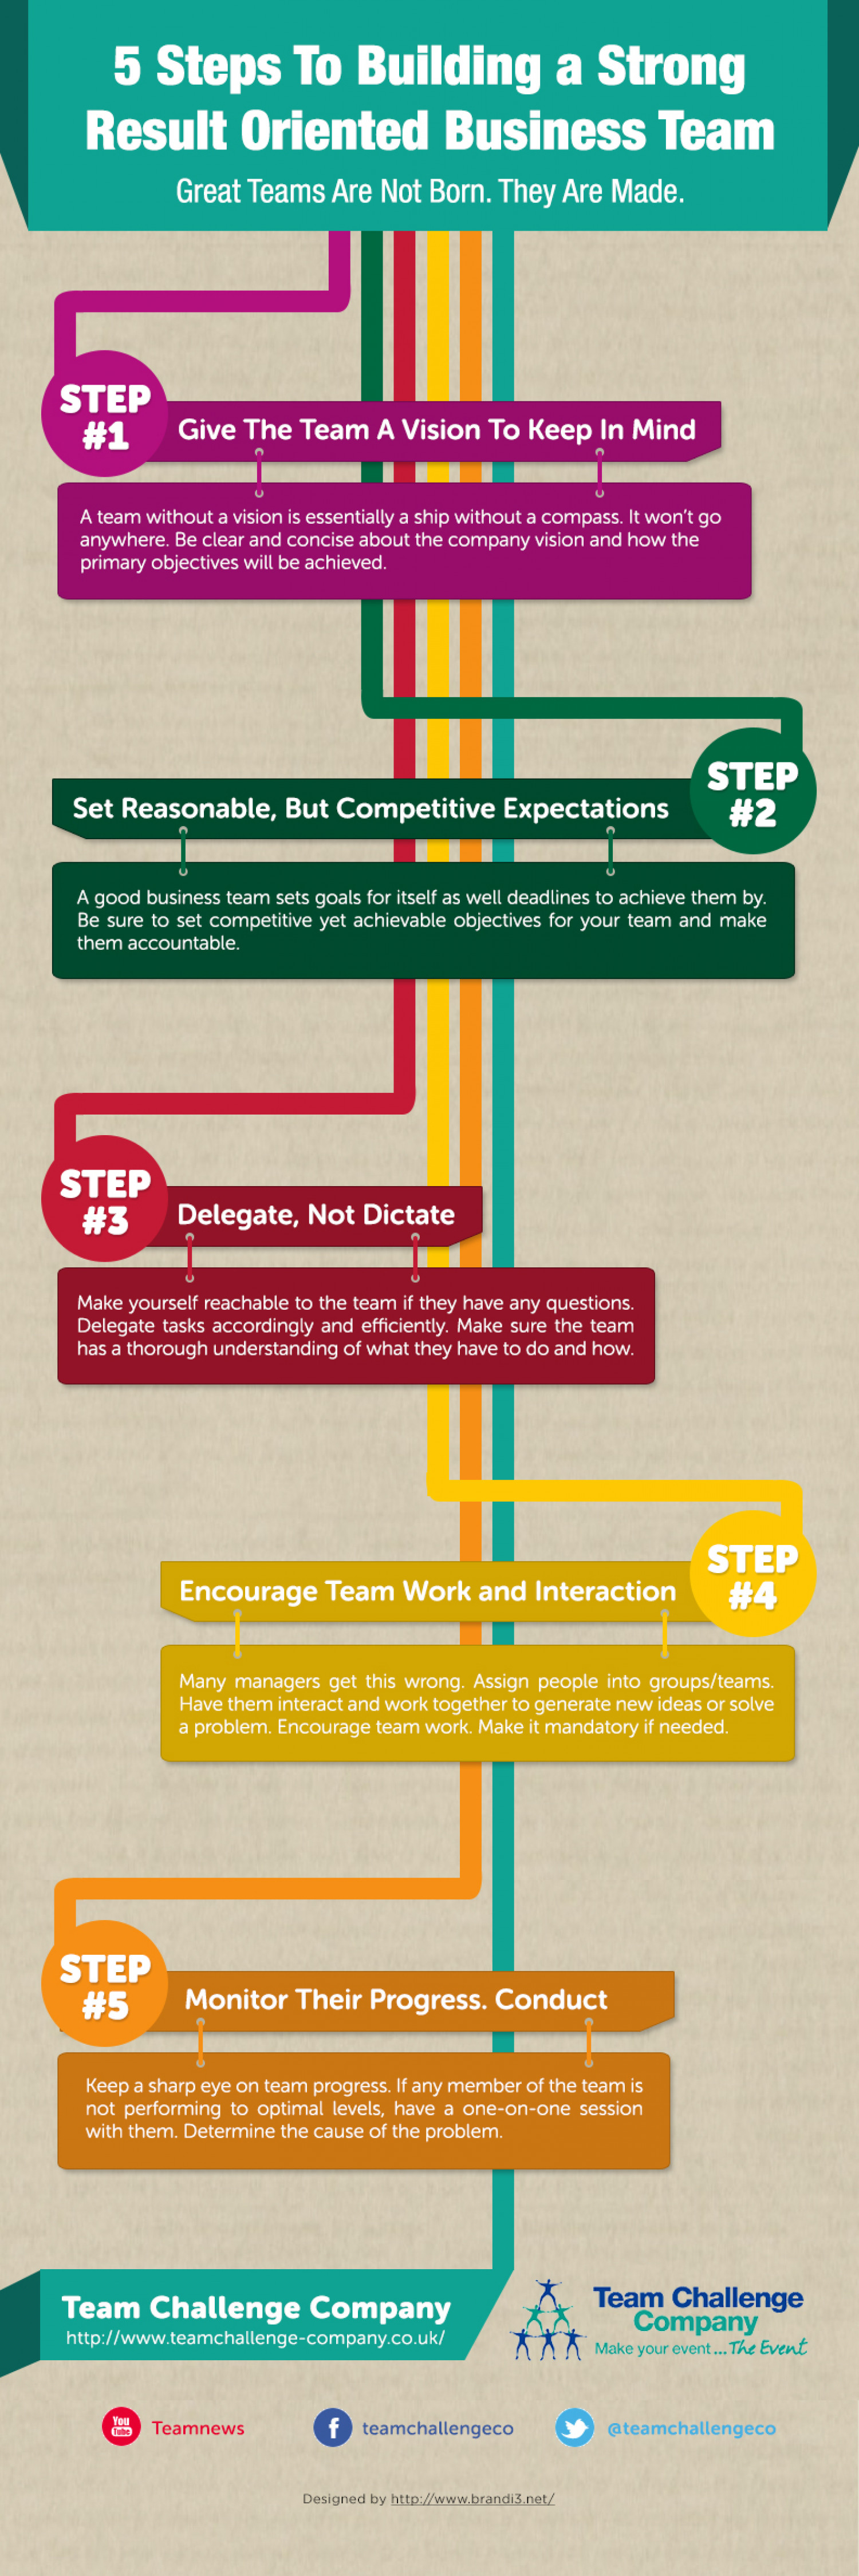 5 Steps To Building A Strong Result Oriented Business Team Infographic